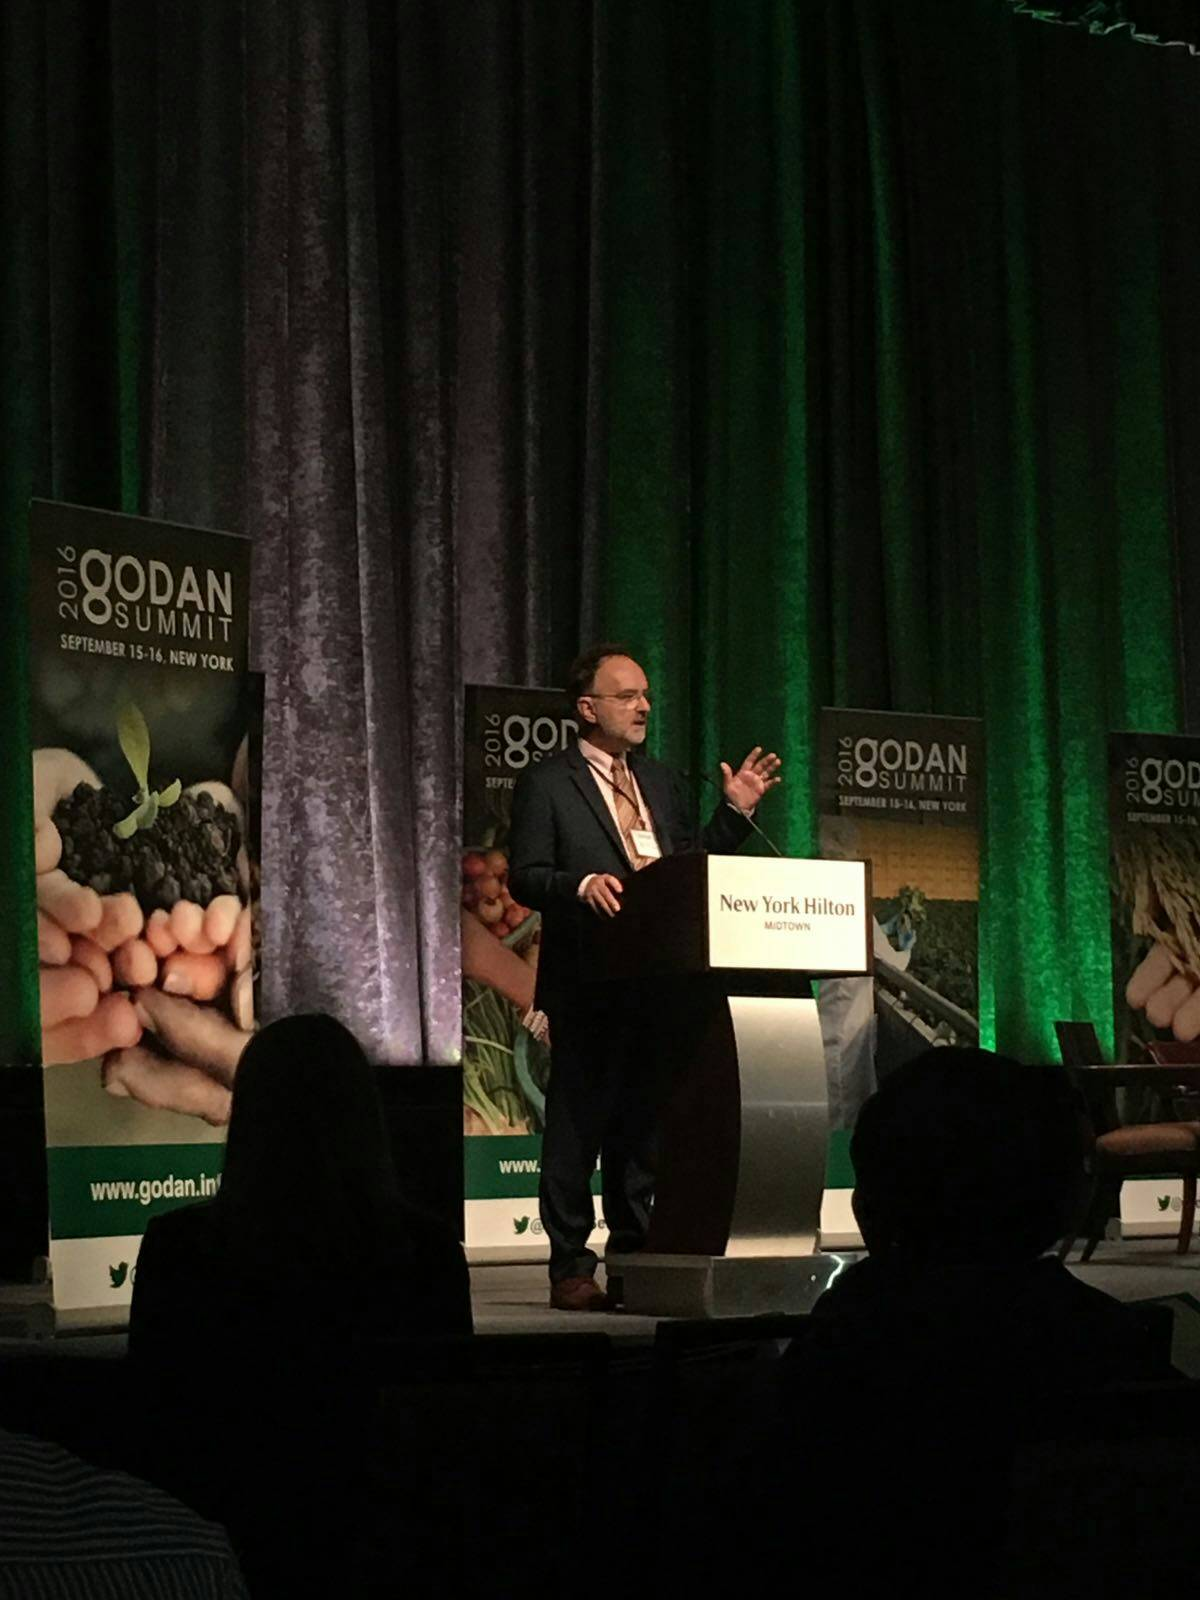 .@godanSec Executive Director @a_laperriere opened the #GODANSummit2016 https://t.co/sqp51txUnf